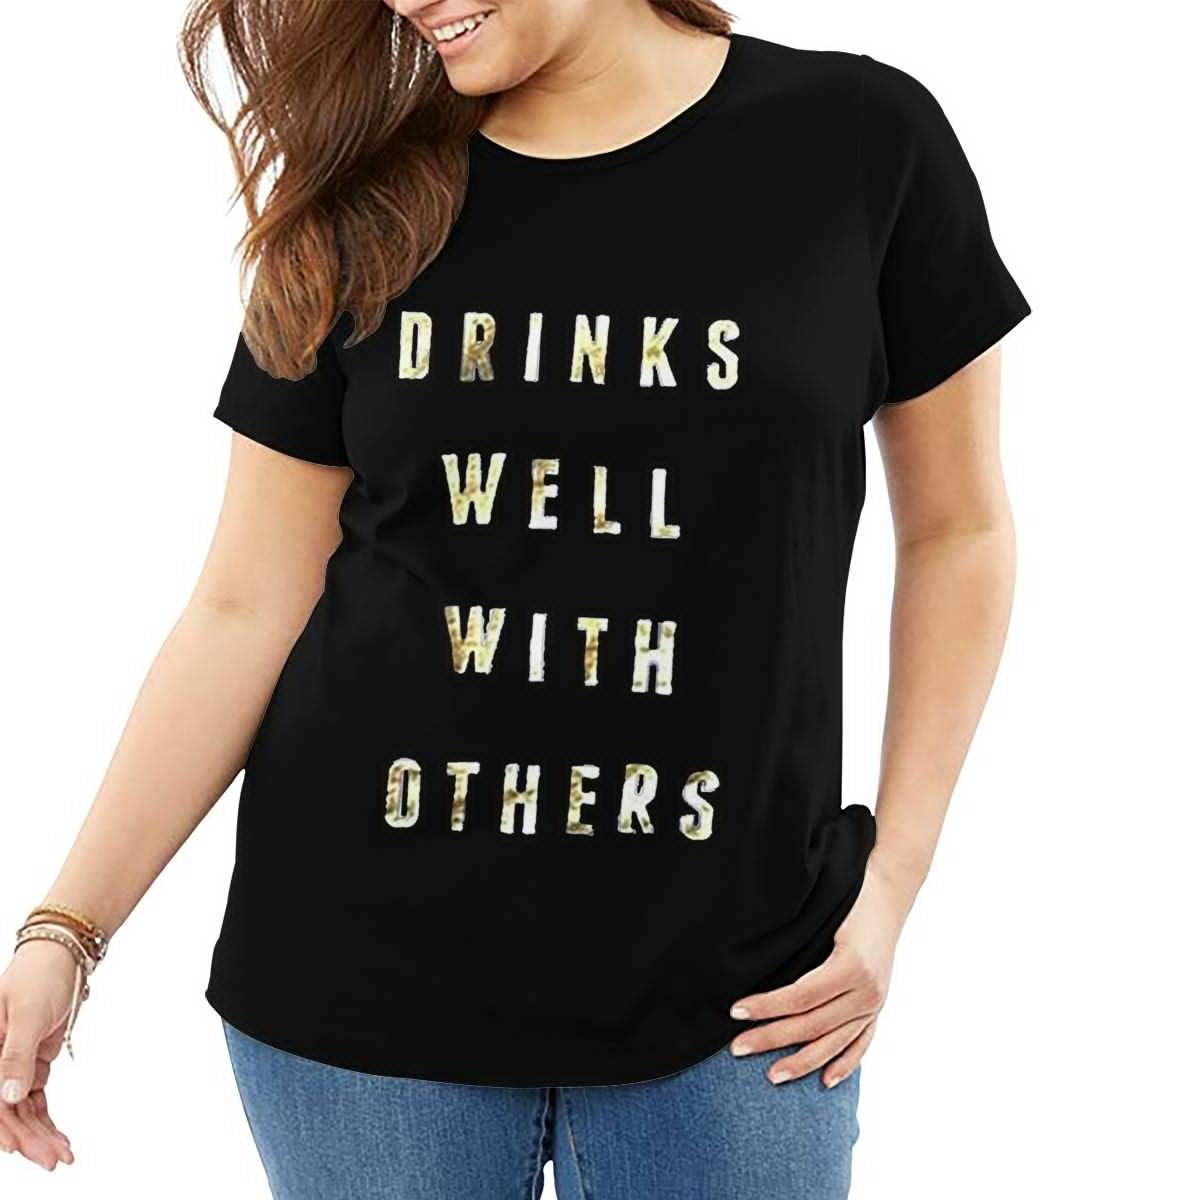 Fat Women's T Shirt Drinks Well with Others Tee Shirts T-Shirt Short-Sleeve Round Neck Tshirt for Women Youth Girls Black 4XL by BKashy